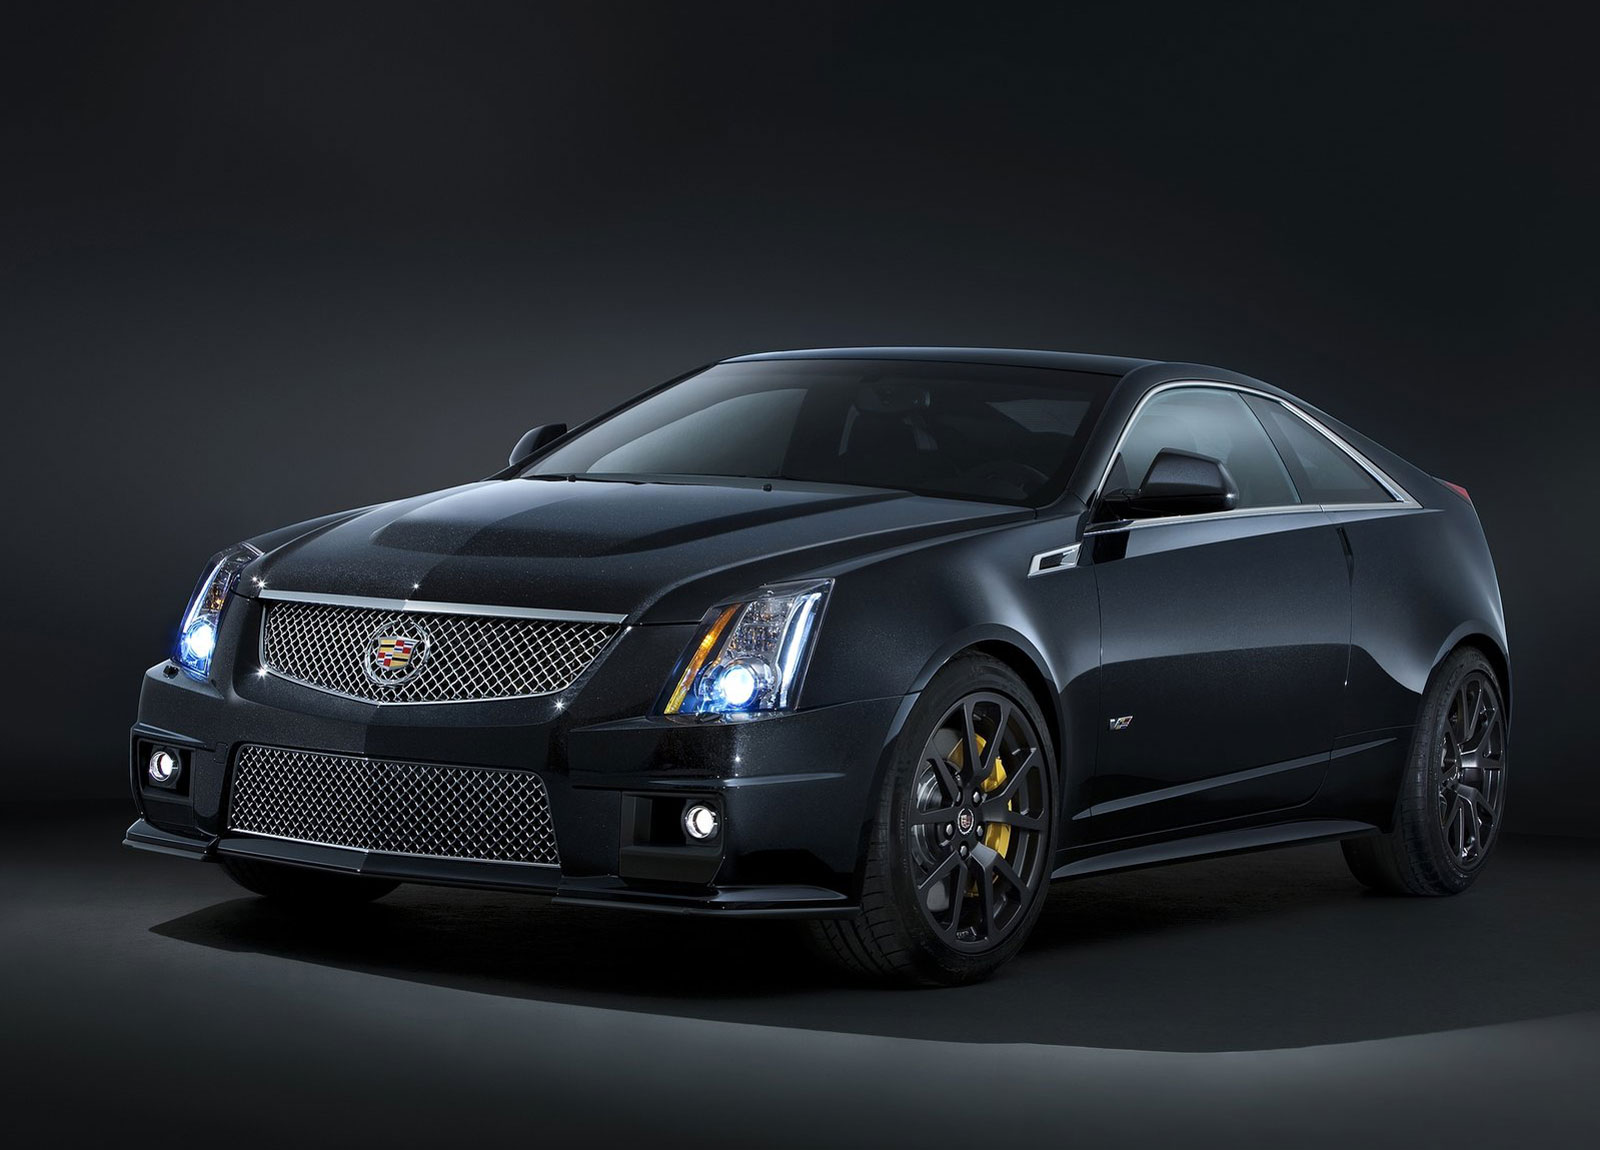 Cadillac CTS-V Black Diamond Edition Adds a Diamond-like Finish to Cadillac V-Series